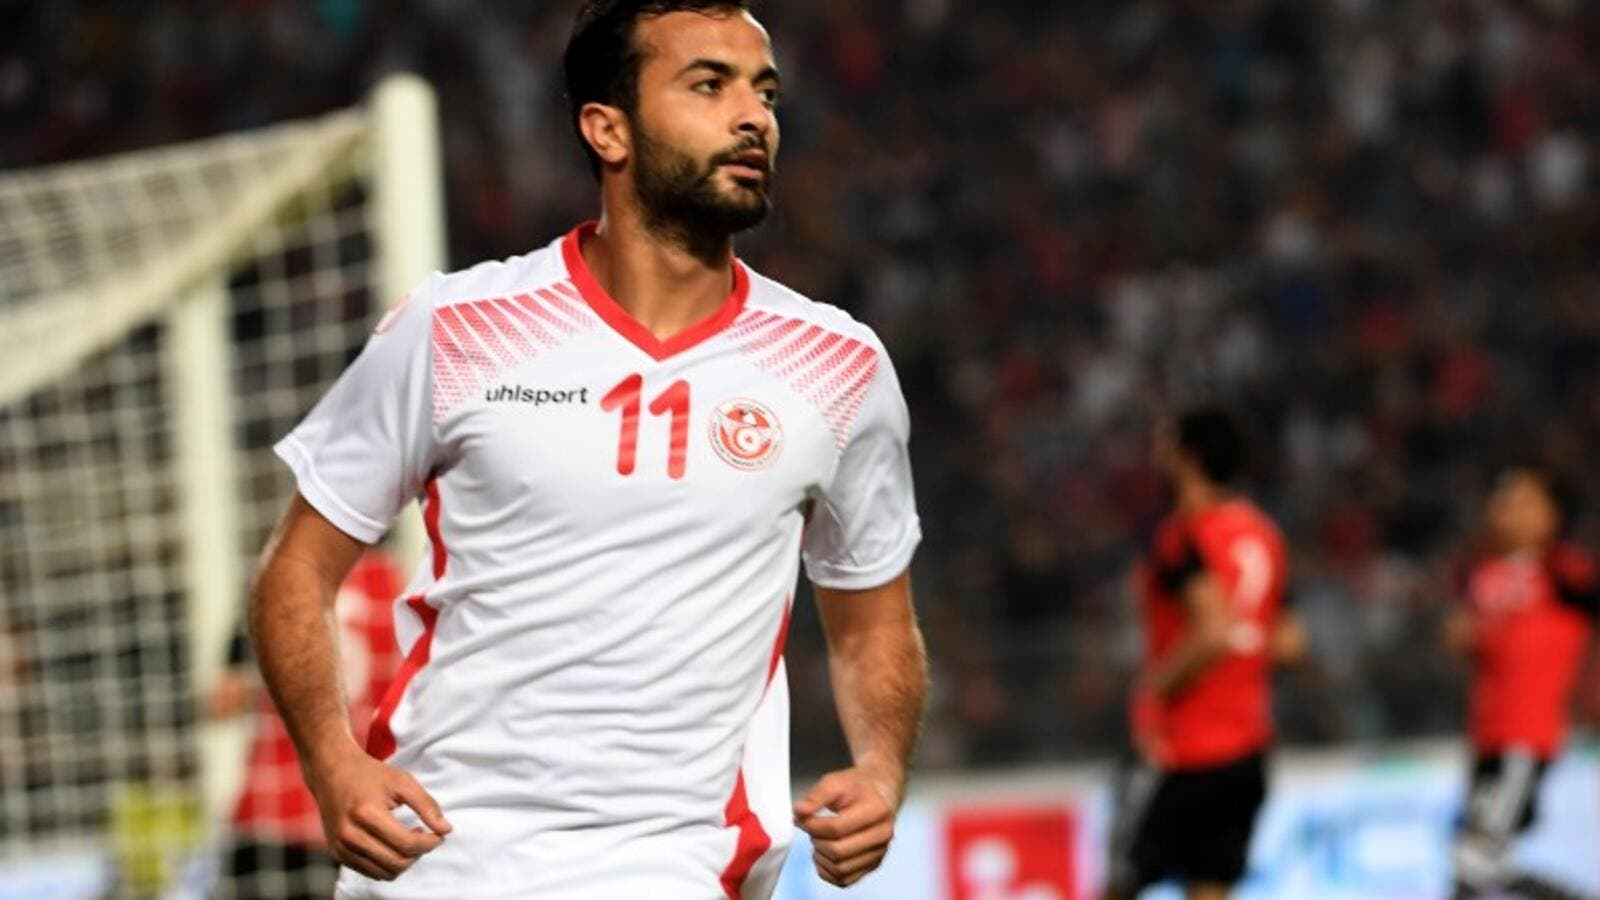 Tunisian striker Taha Yassine Khenissi celebrates after scoring against Egypt during their African Cup of Nations CAN 2019 preliminary stage qualification football match in Rades on June 11, 2017.